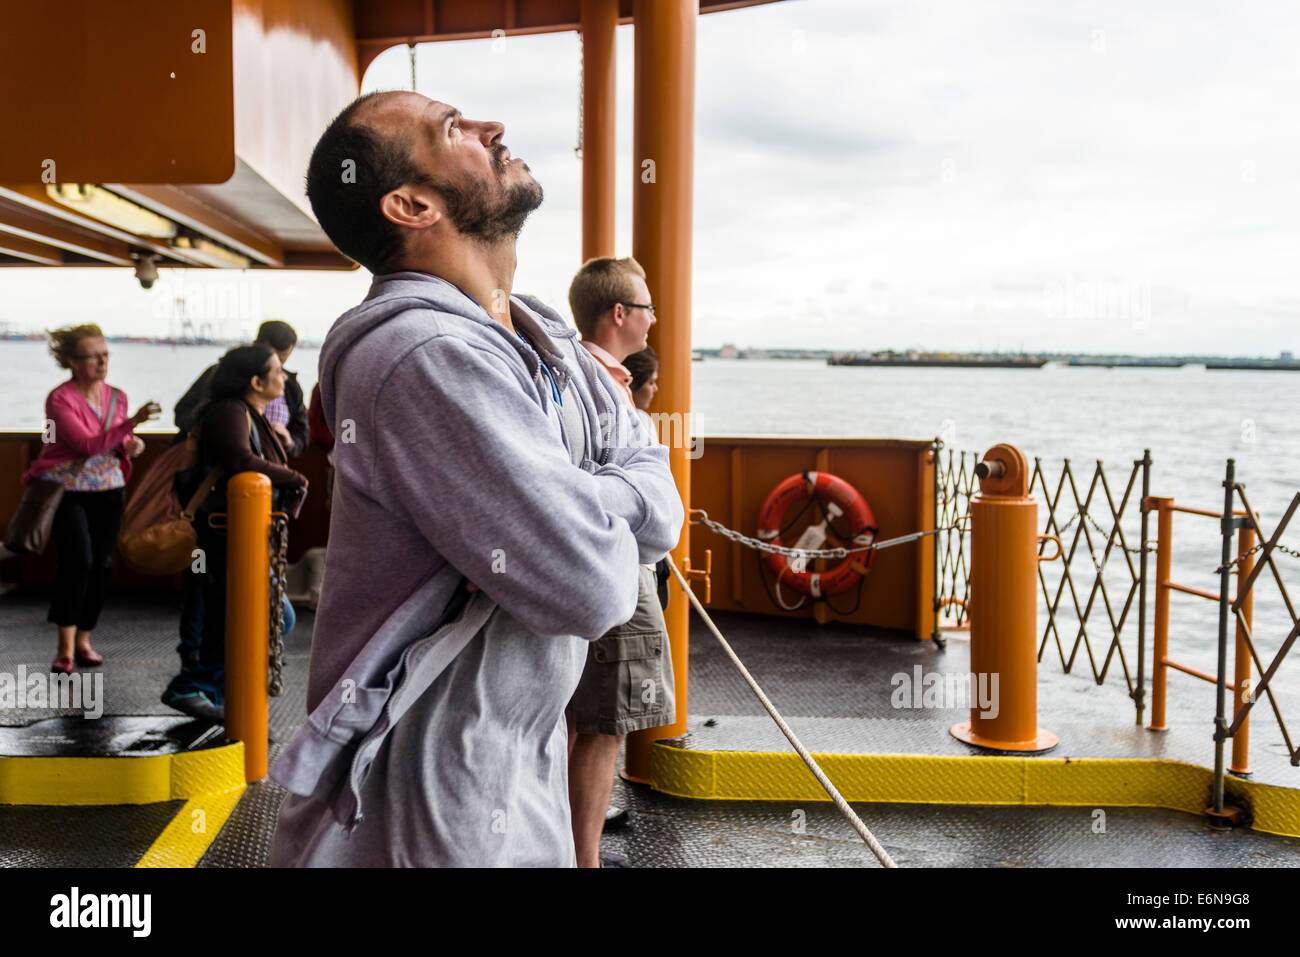 Staten Island, NY - 23 Aug 2014 - Man taking in a refreshing harbor breeze on the Staten Island Ferry - Stock Image